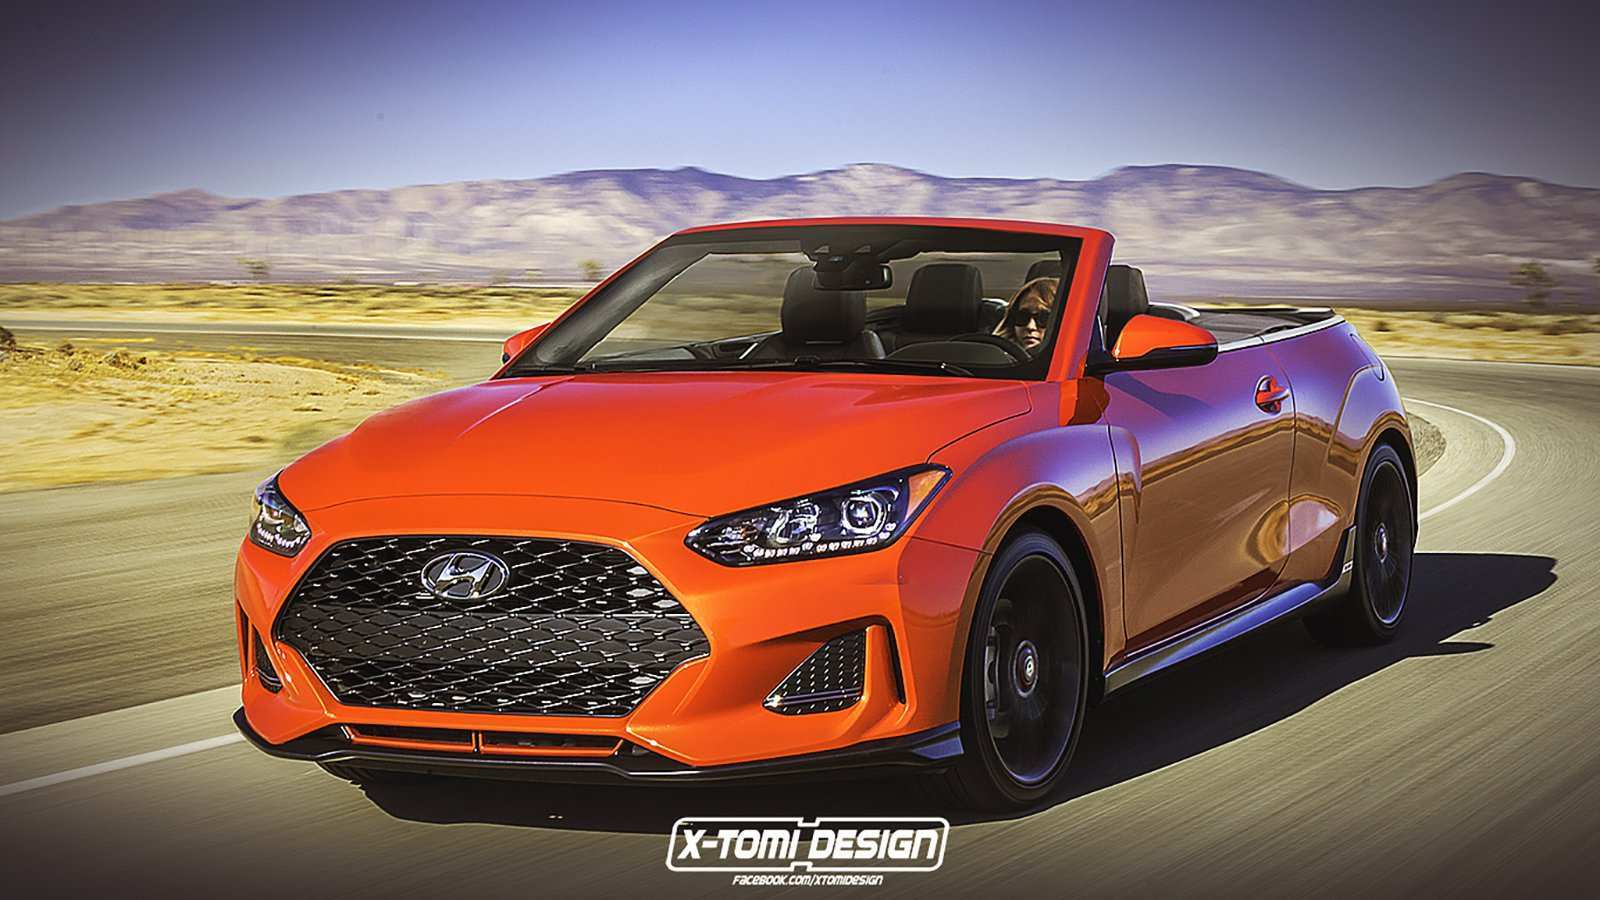 47 Best Review 2020 Hyundai Veloster Turbo Release with 2020 Hyundai Veloster Turbo